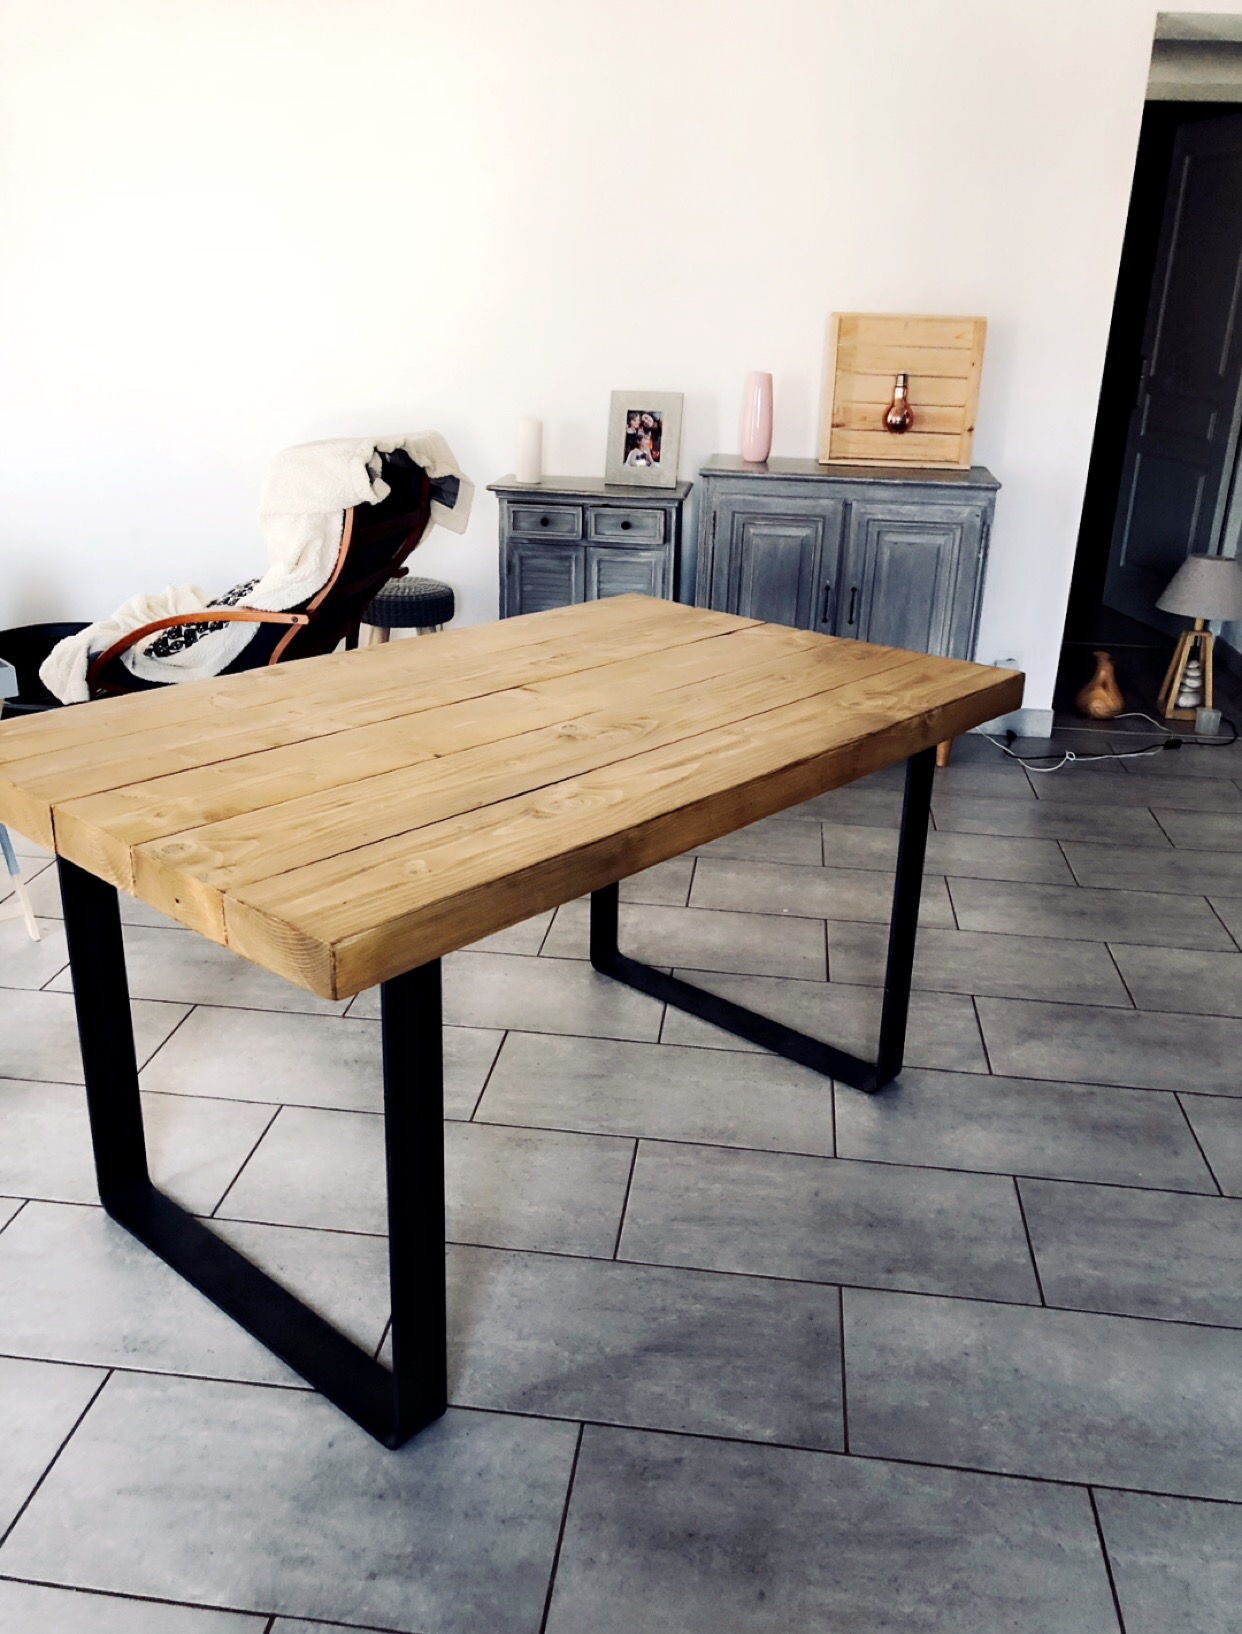 Table Exterieur Industriel Table Bois Industriel